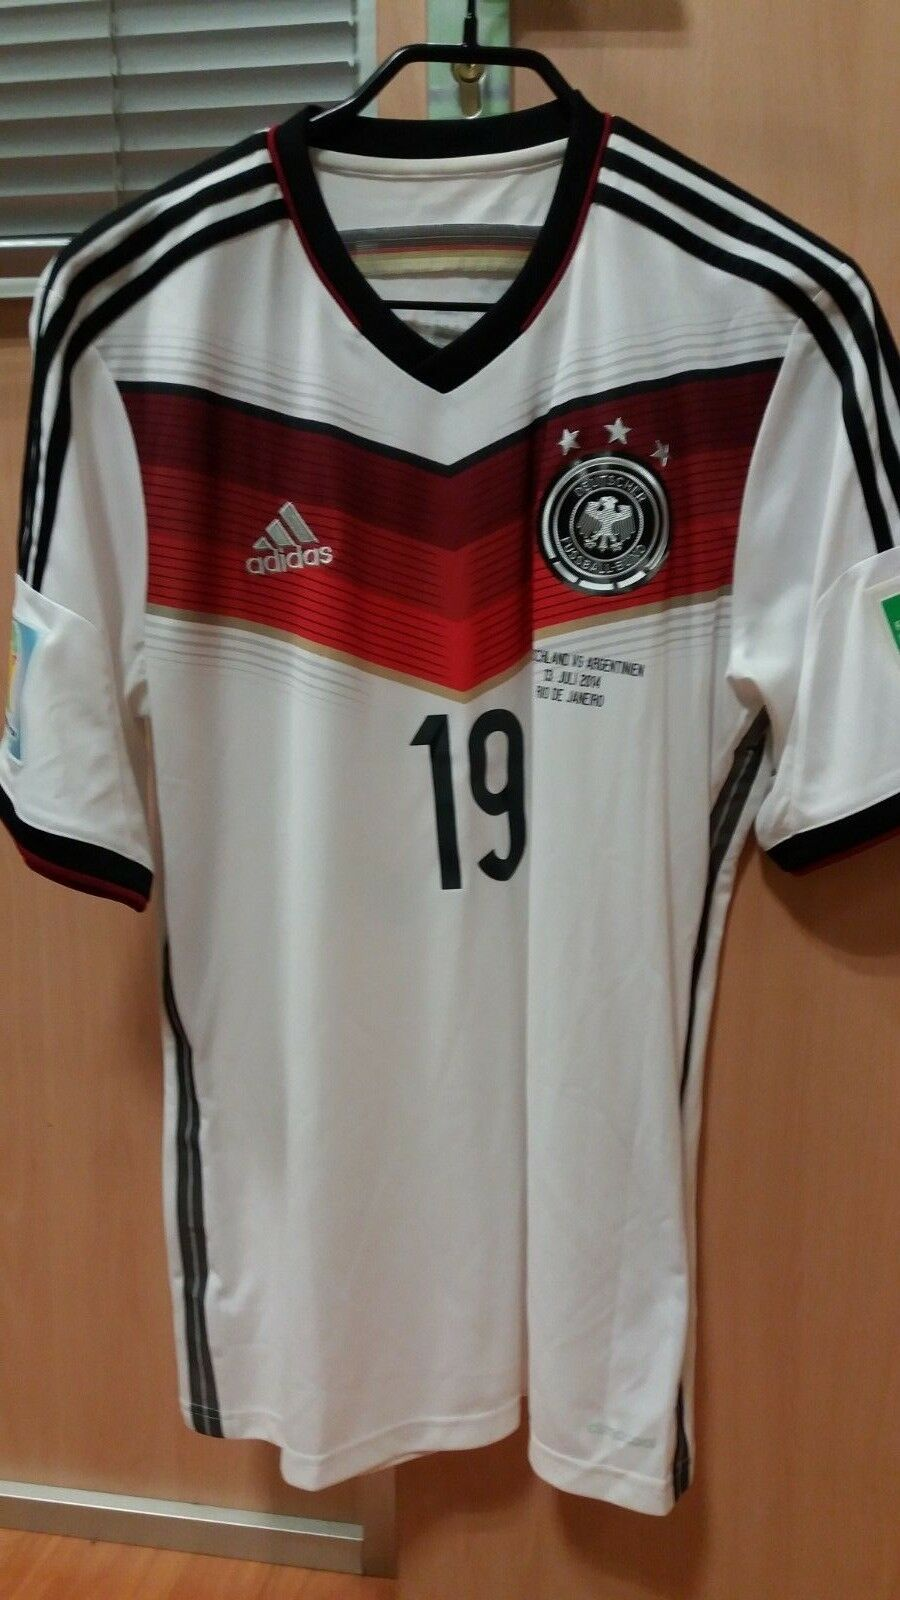 GERMANY DFB ADIDAS WORLD CUP FINAL 2014 GOTZE SHIRT